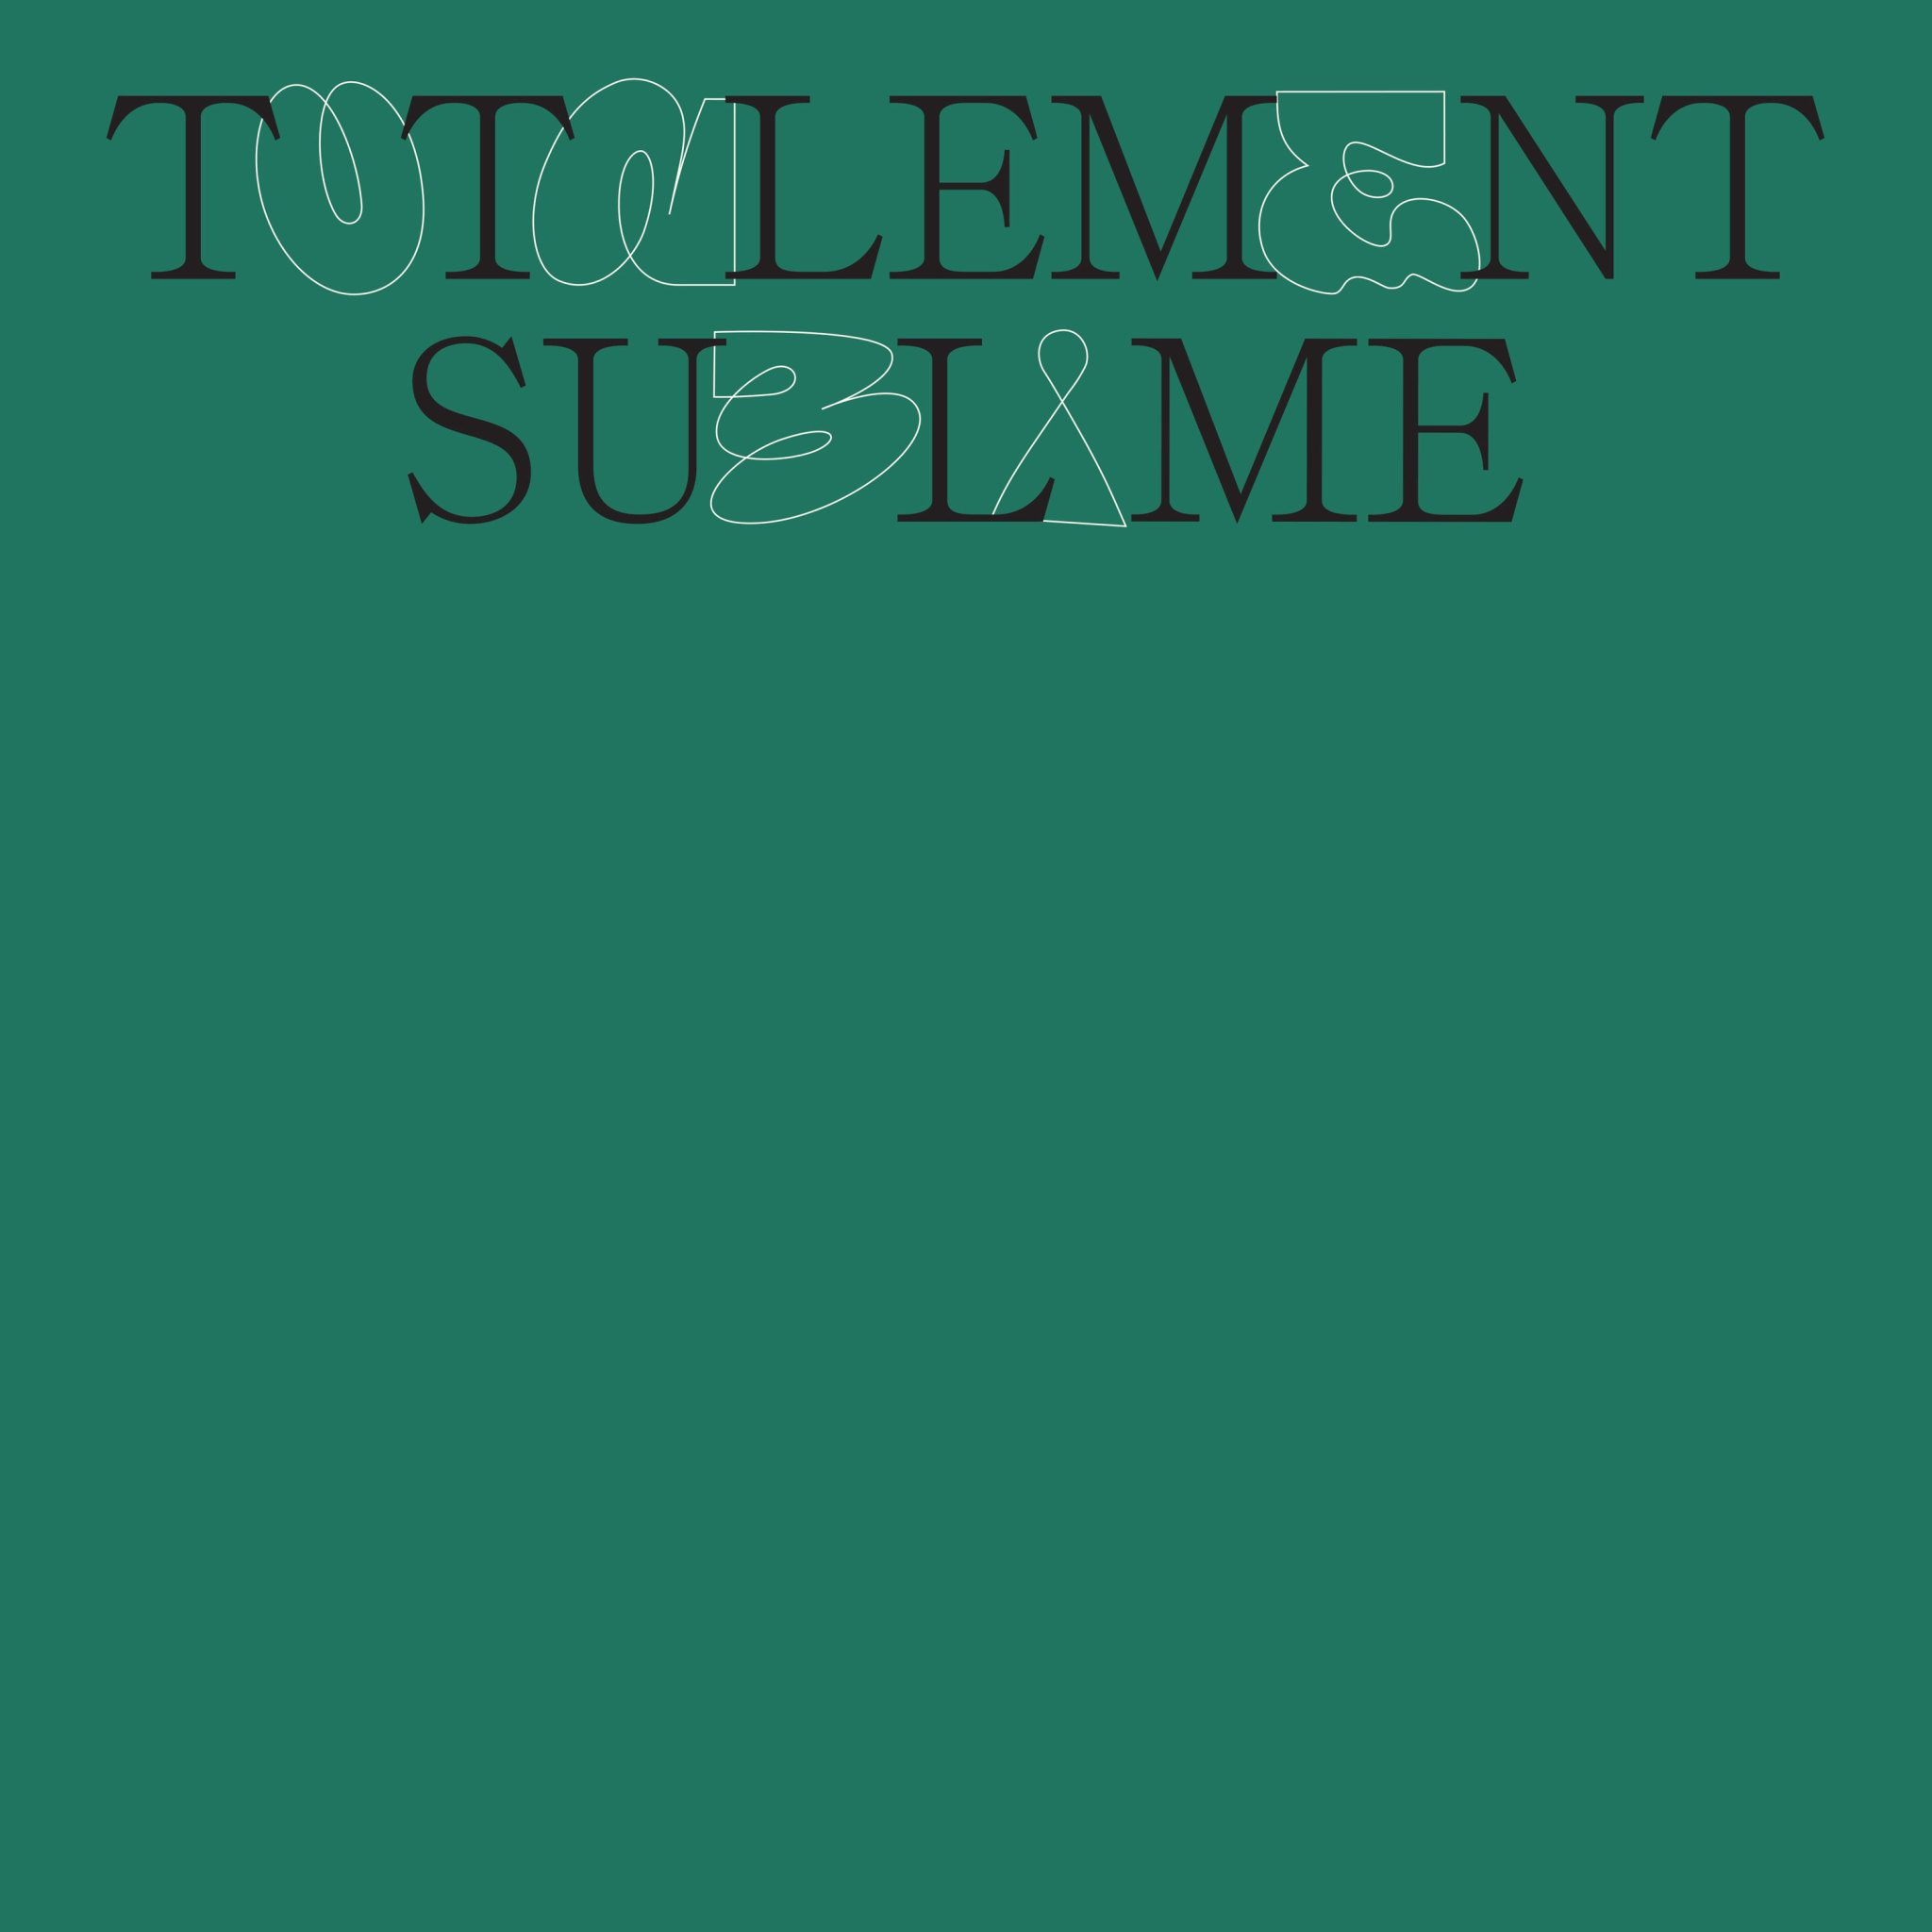 Totalement Sublime • Totalement Sublime-1